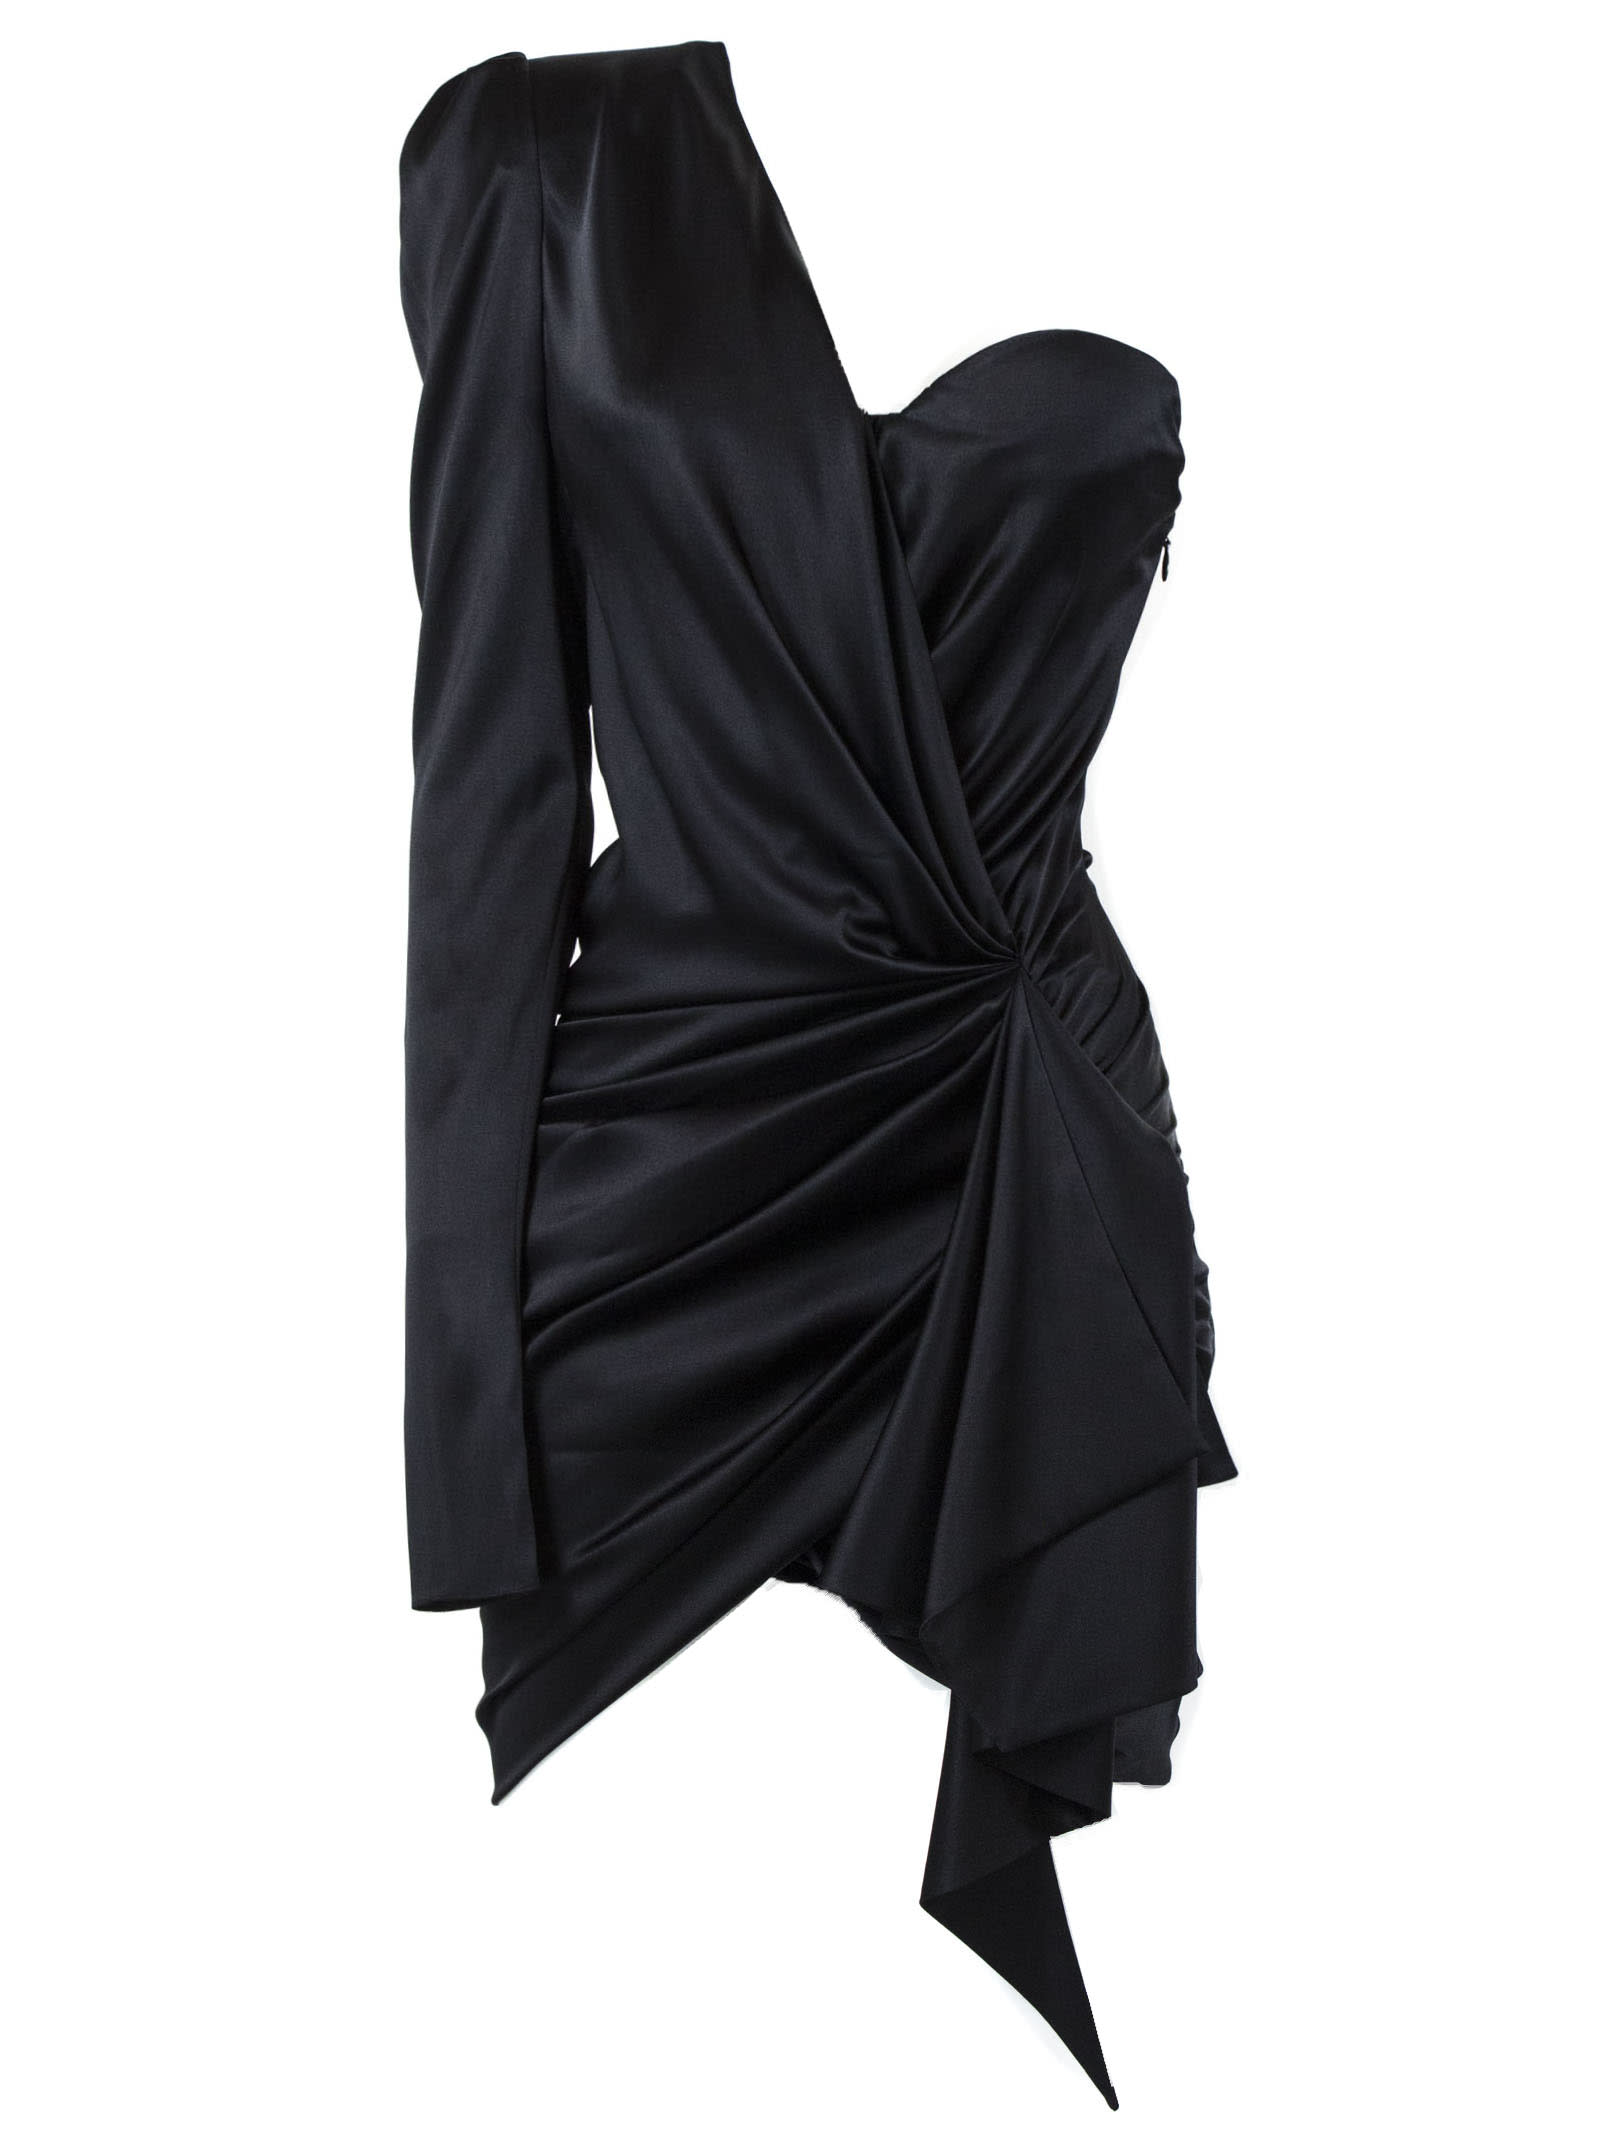 Alexandre Vauthier Black Silk Asymmetric Mini Dress